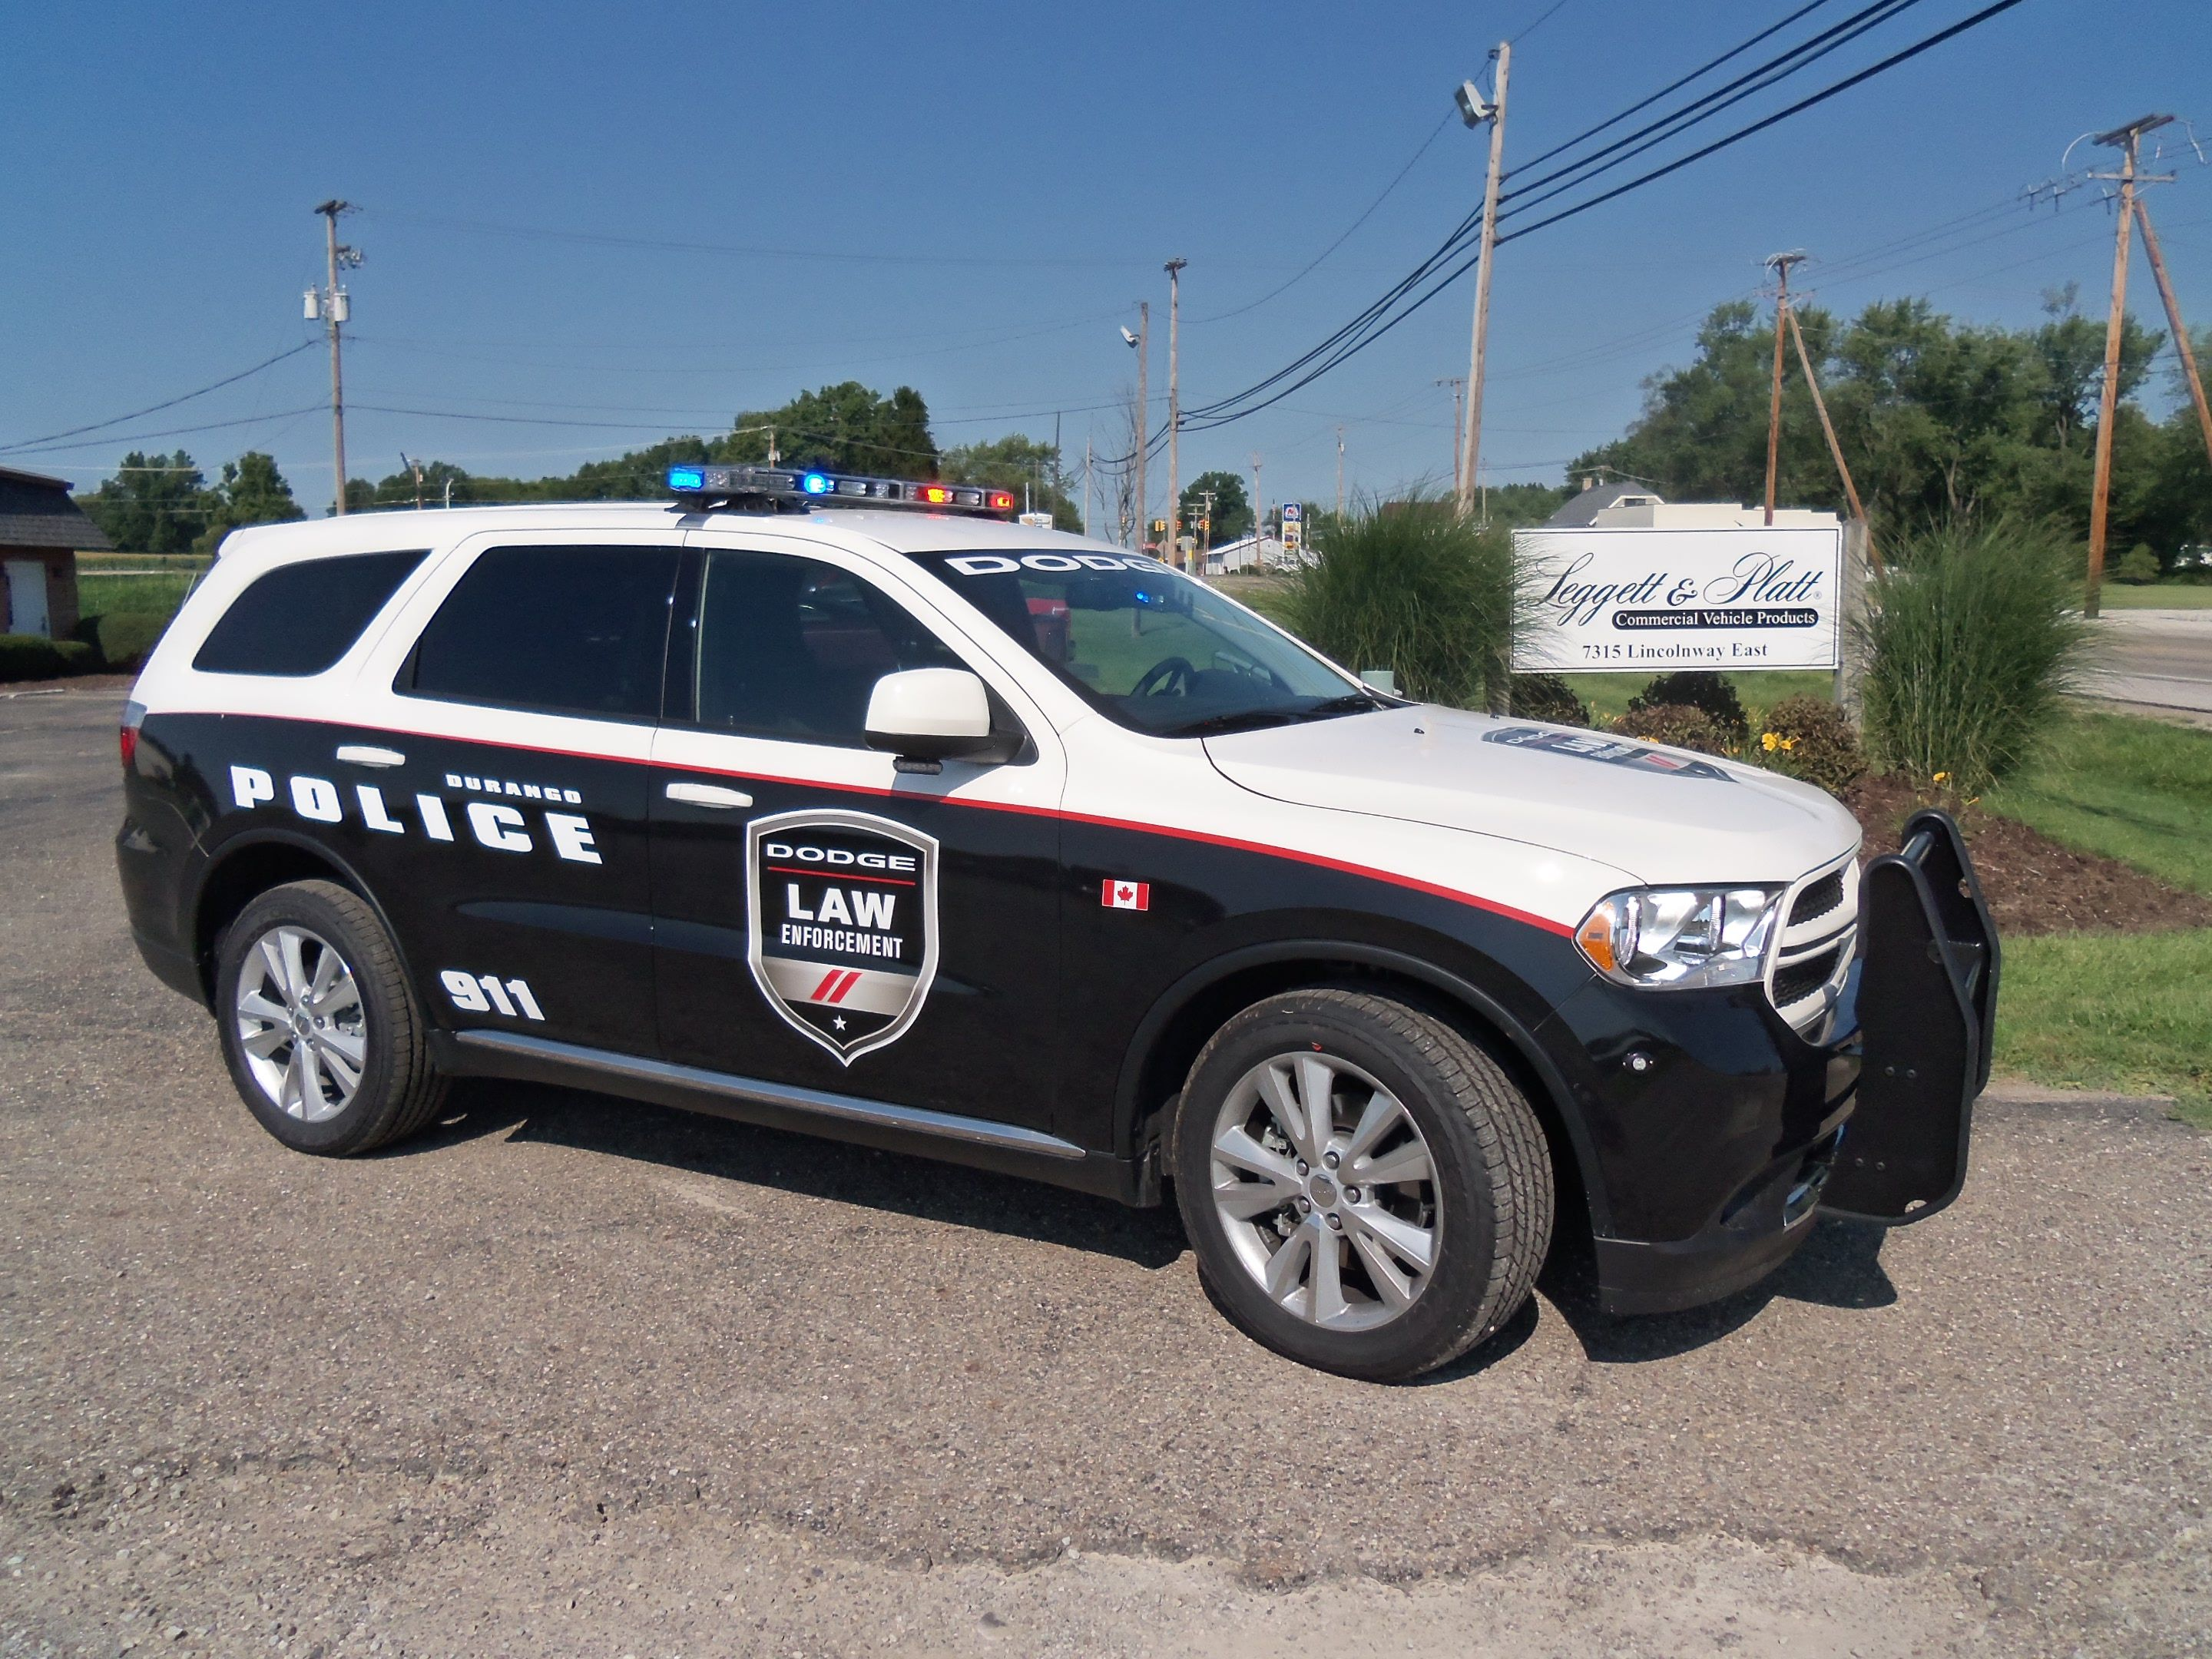 Dodge durango police special service vehicle at crown north america s facility in apple creek ohio